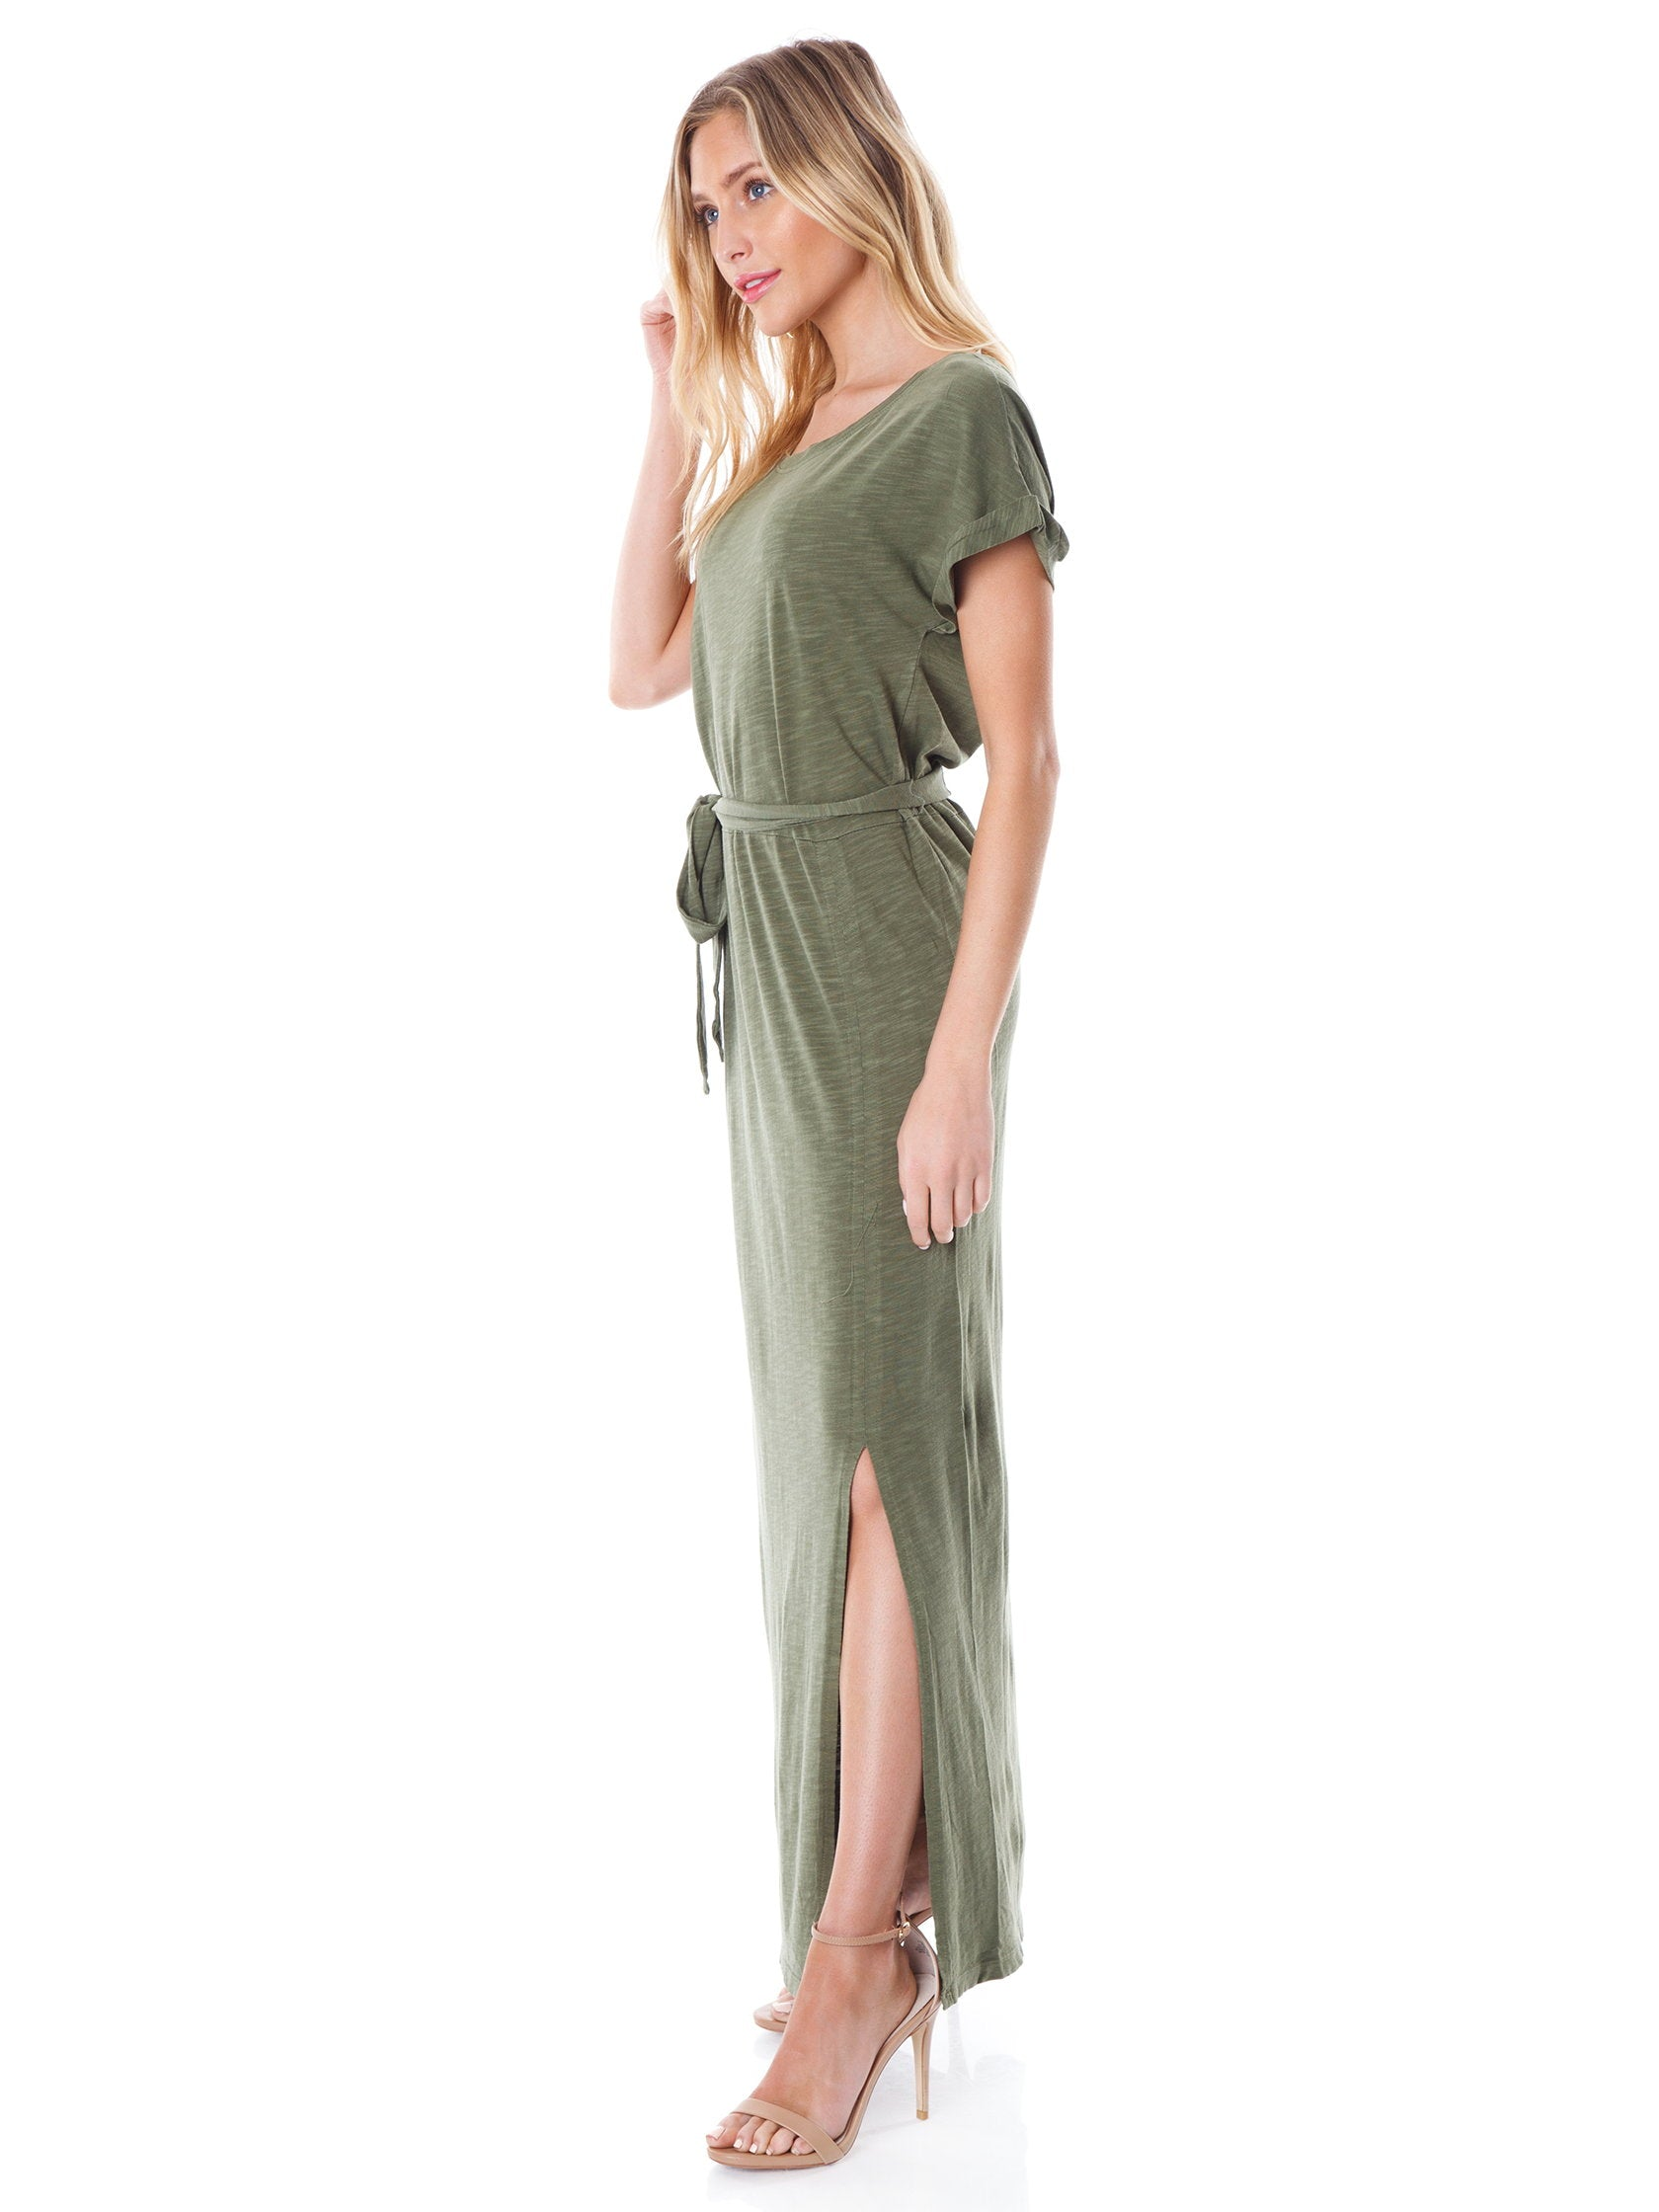 Woman wearing a dress rental from SANCTUARY called Isle T-shirt Maxi Dress